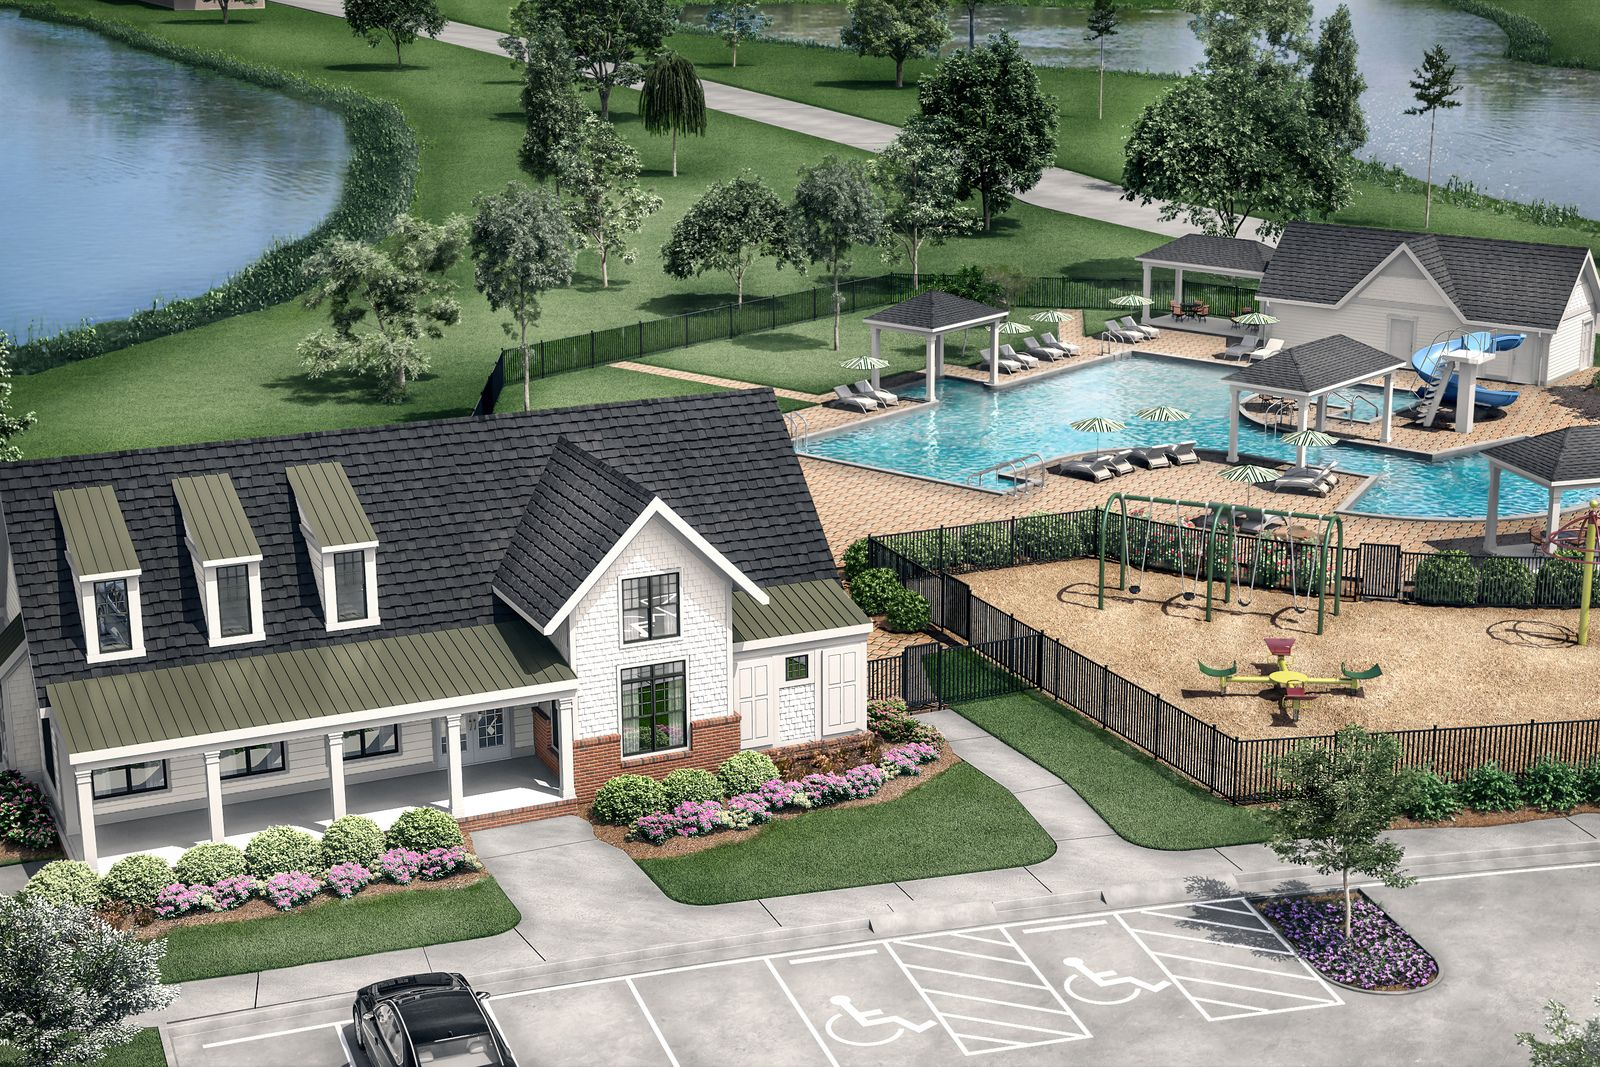 2.2 MILLION DOLLAR AMENITIES ON OUR LAKES:Enjoy lakes, piers, clubhouse, playgounds, pool w/ splash pad, and much more—our HOA fee is only $82/month!Schedule your visit today to tour on our golf cart.